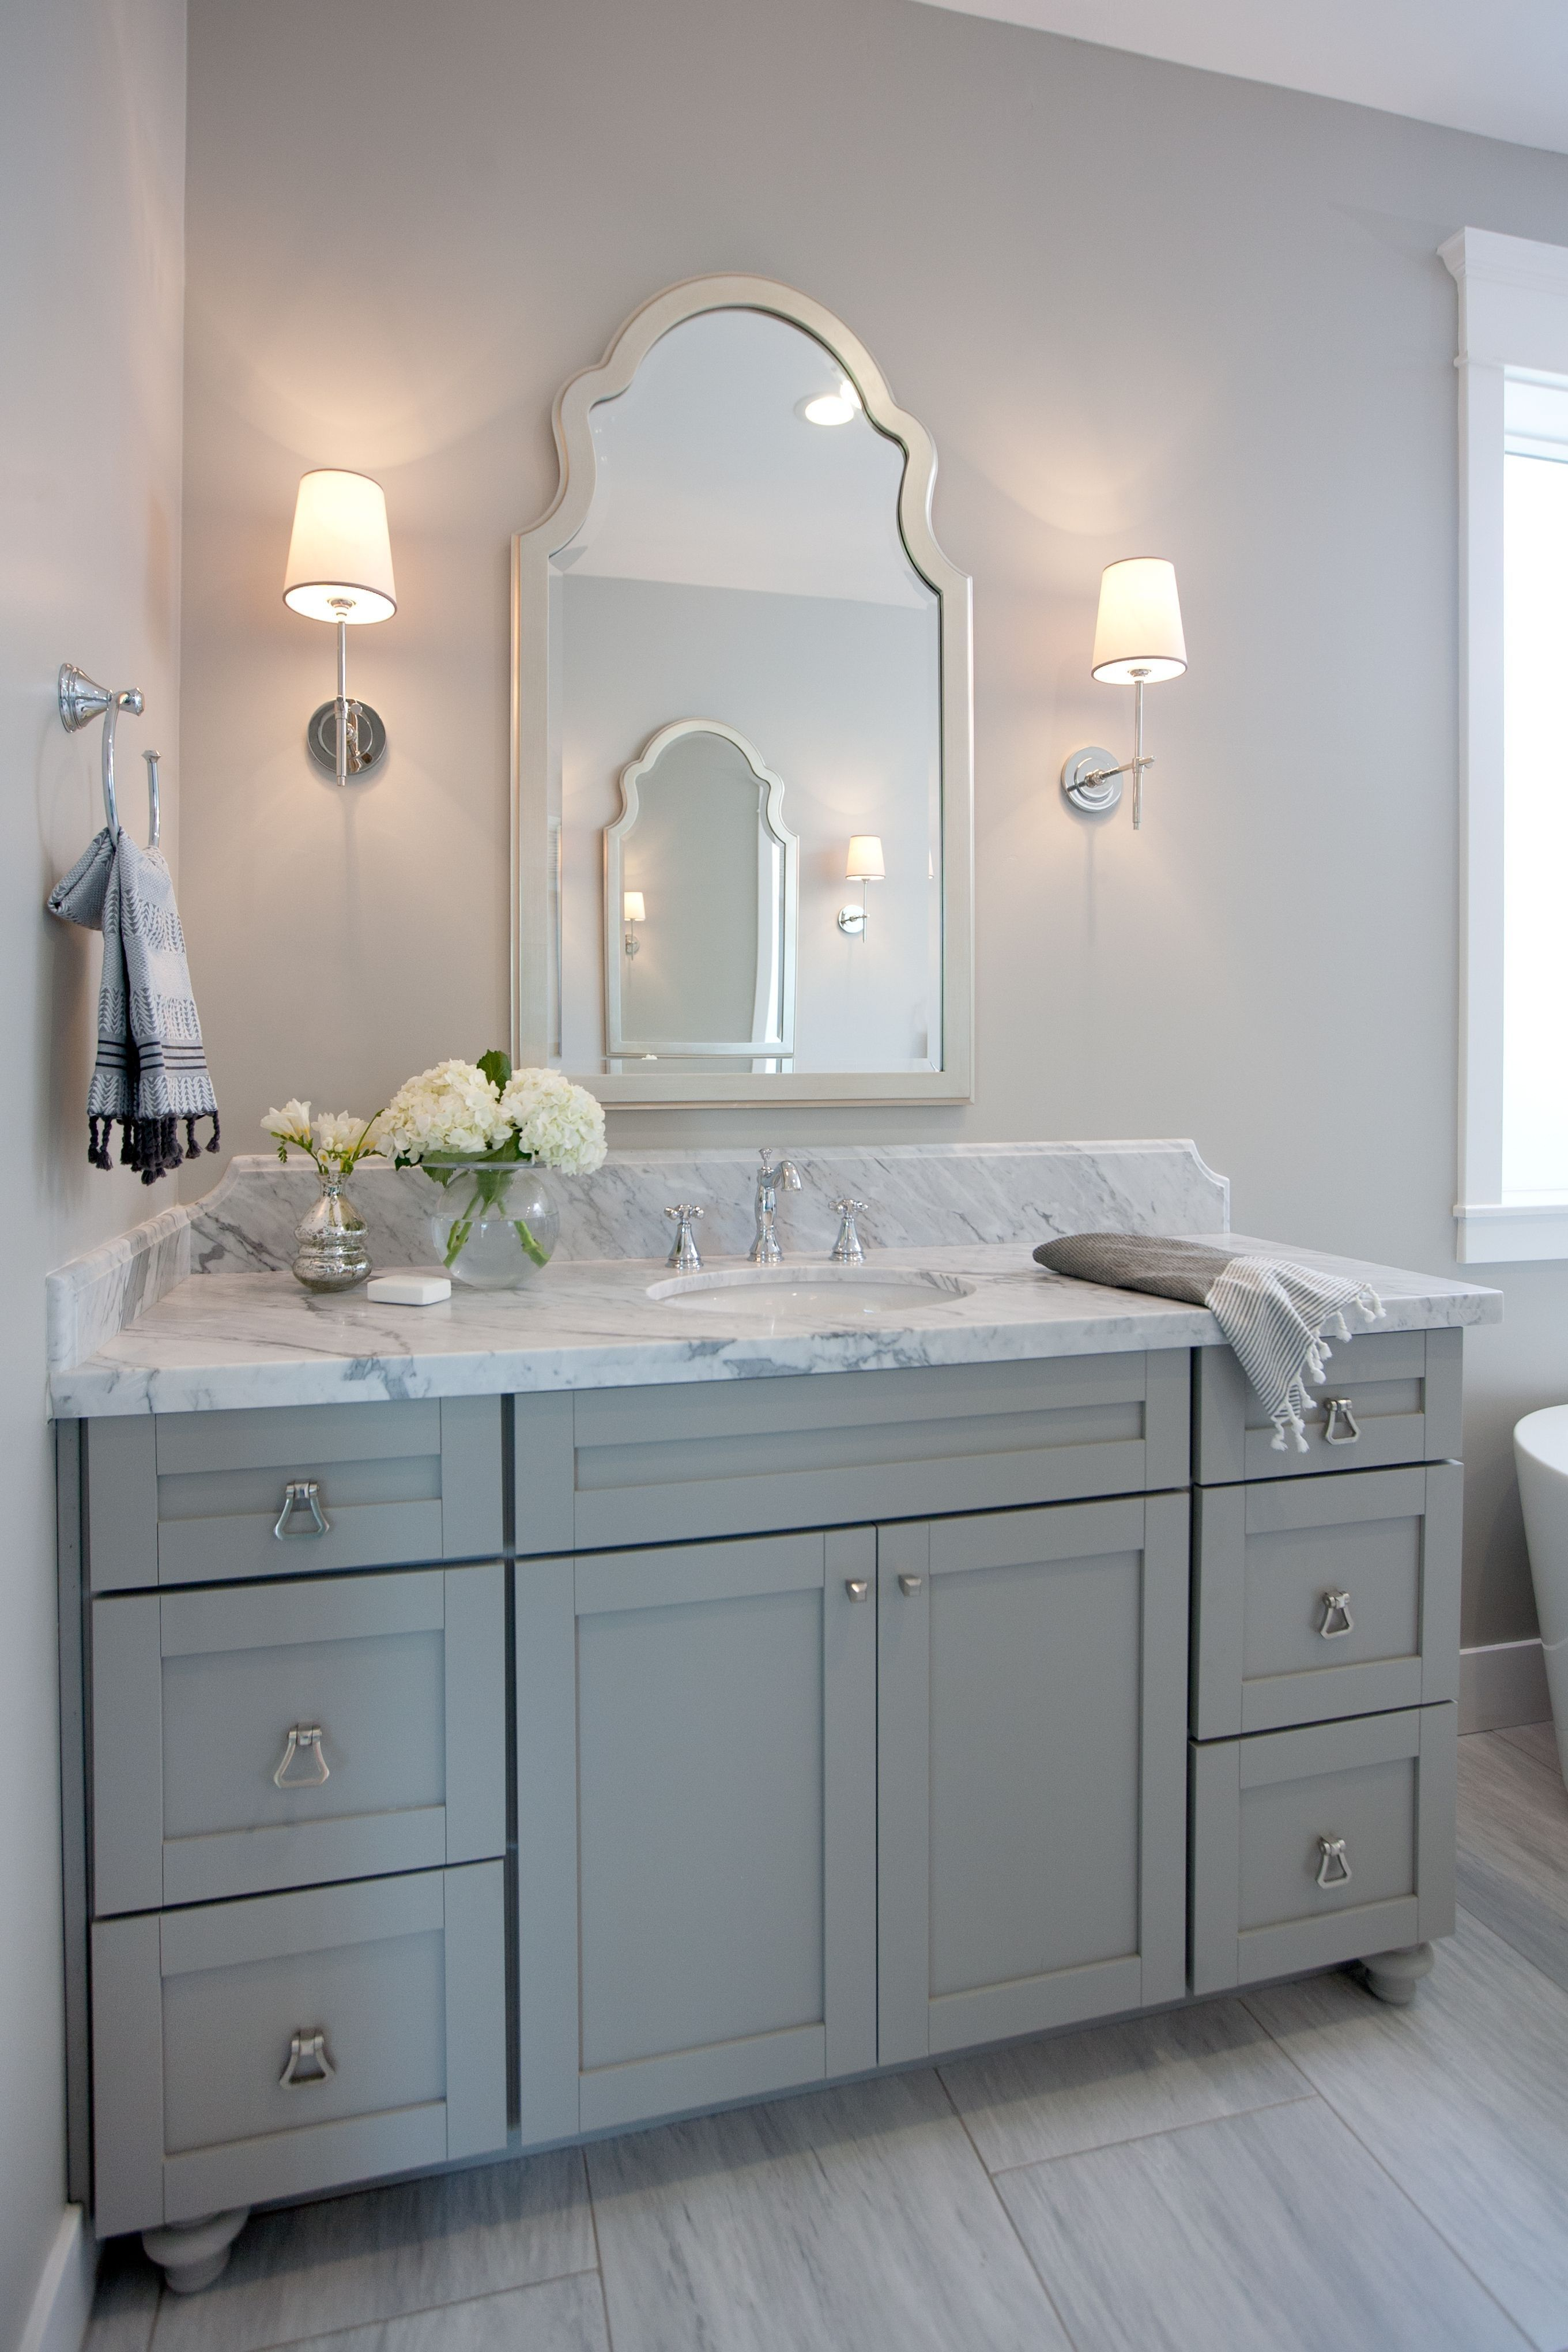 Gray Bathroom Ideas Obtain Inspired With These Gray Bathroom Decorating Ideas Graybathroom Bath Gray Bathroom Decor Grey Bathroom Vanity Bathrooms Remodel